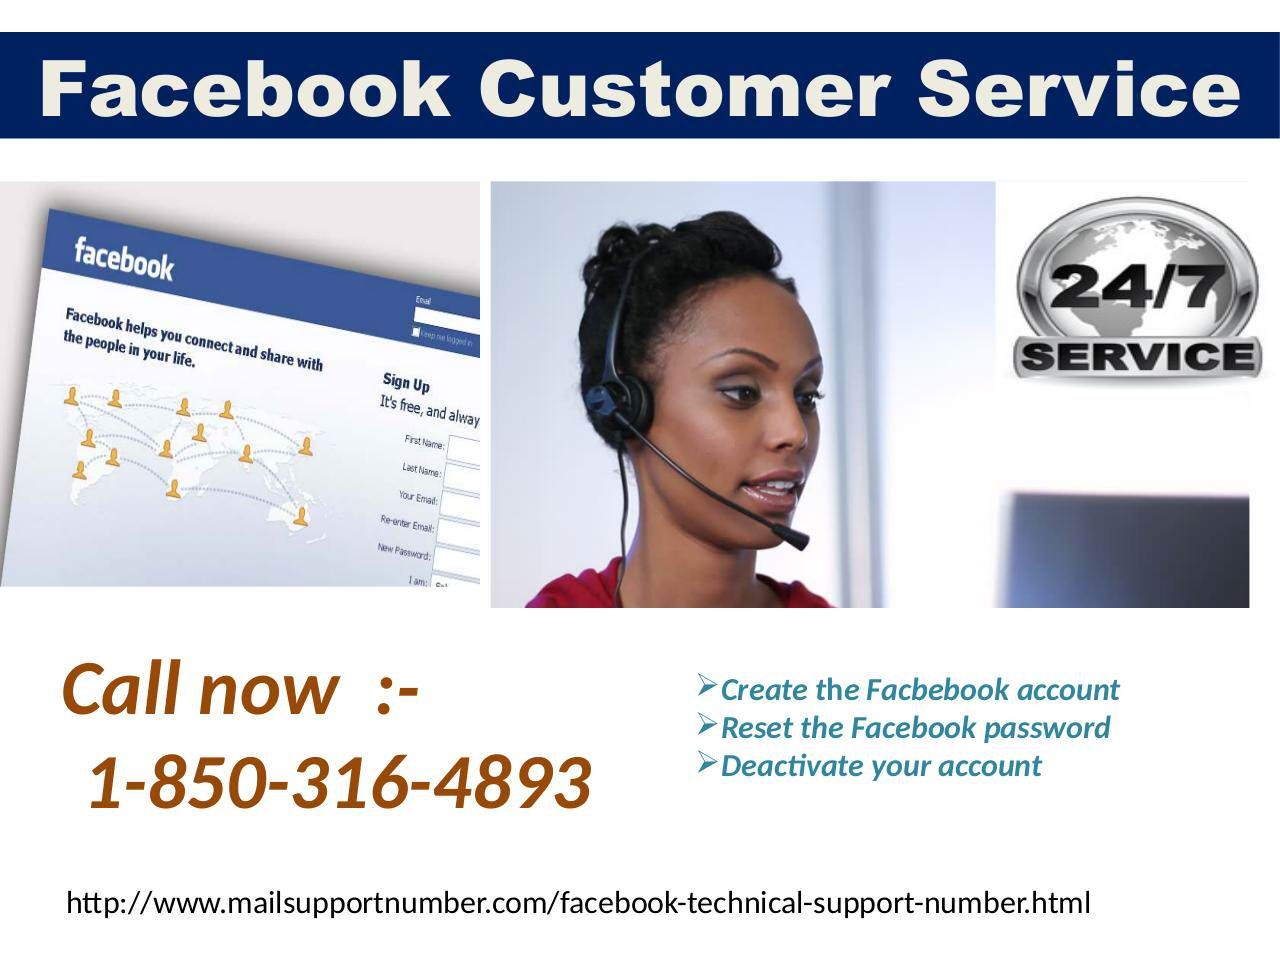 to obtain effectual facebook customer service, you are suggested to